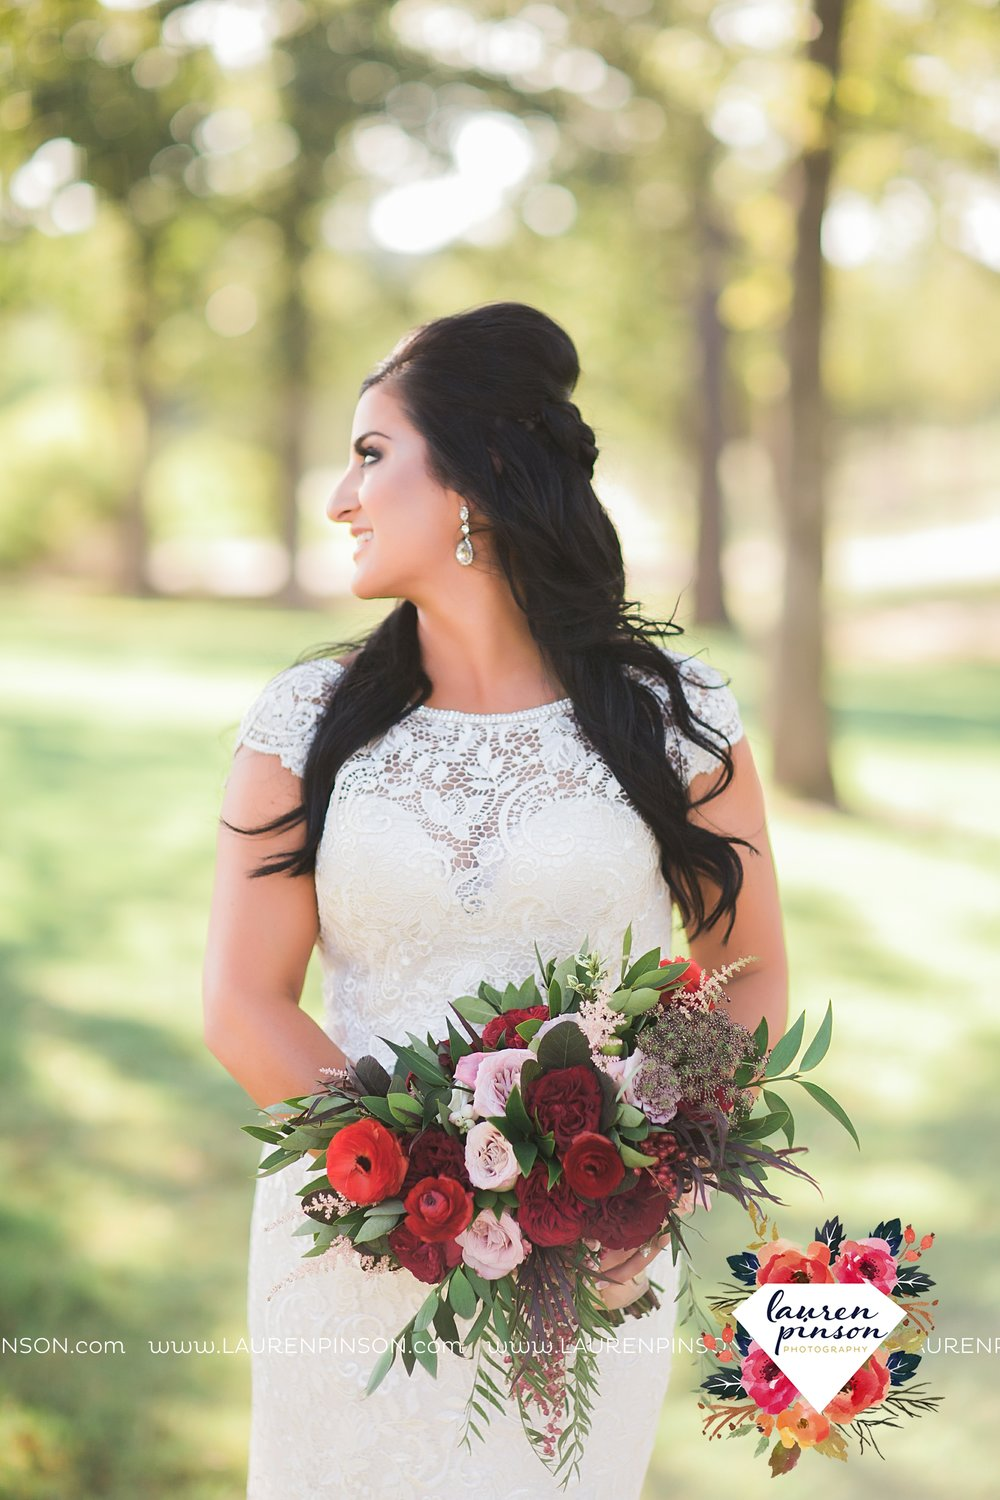 springtown-texas-wedding-at-oak-knoll-ranch-dfw-and-wichita-falls-wedding-photography-lauren-pinson_3522.jpg